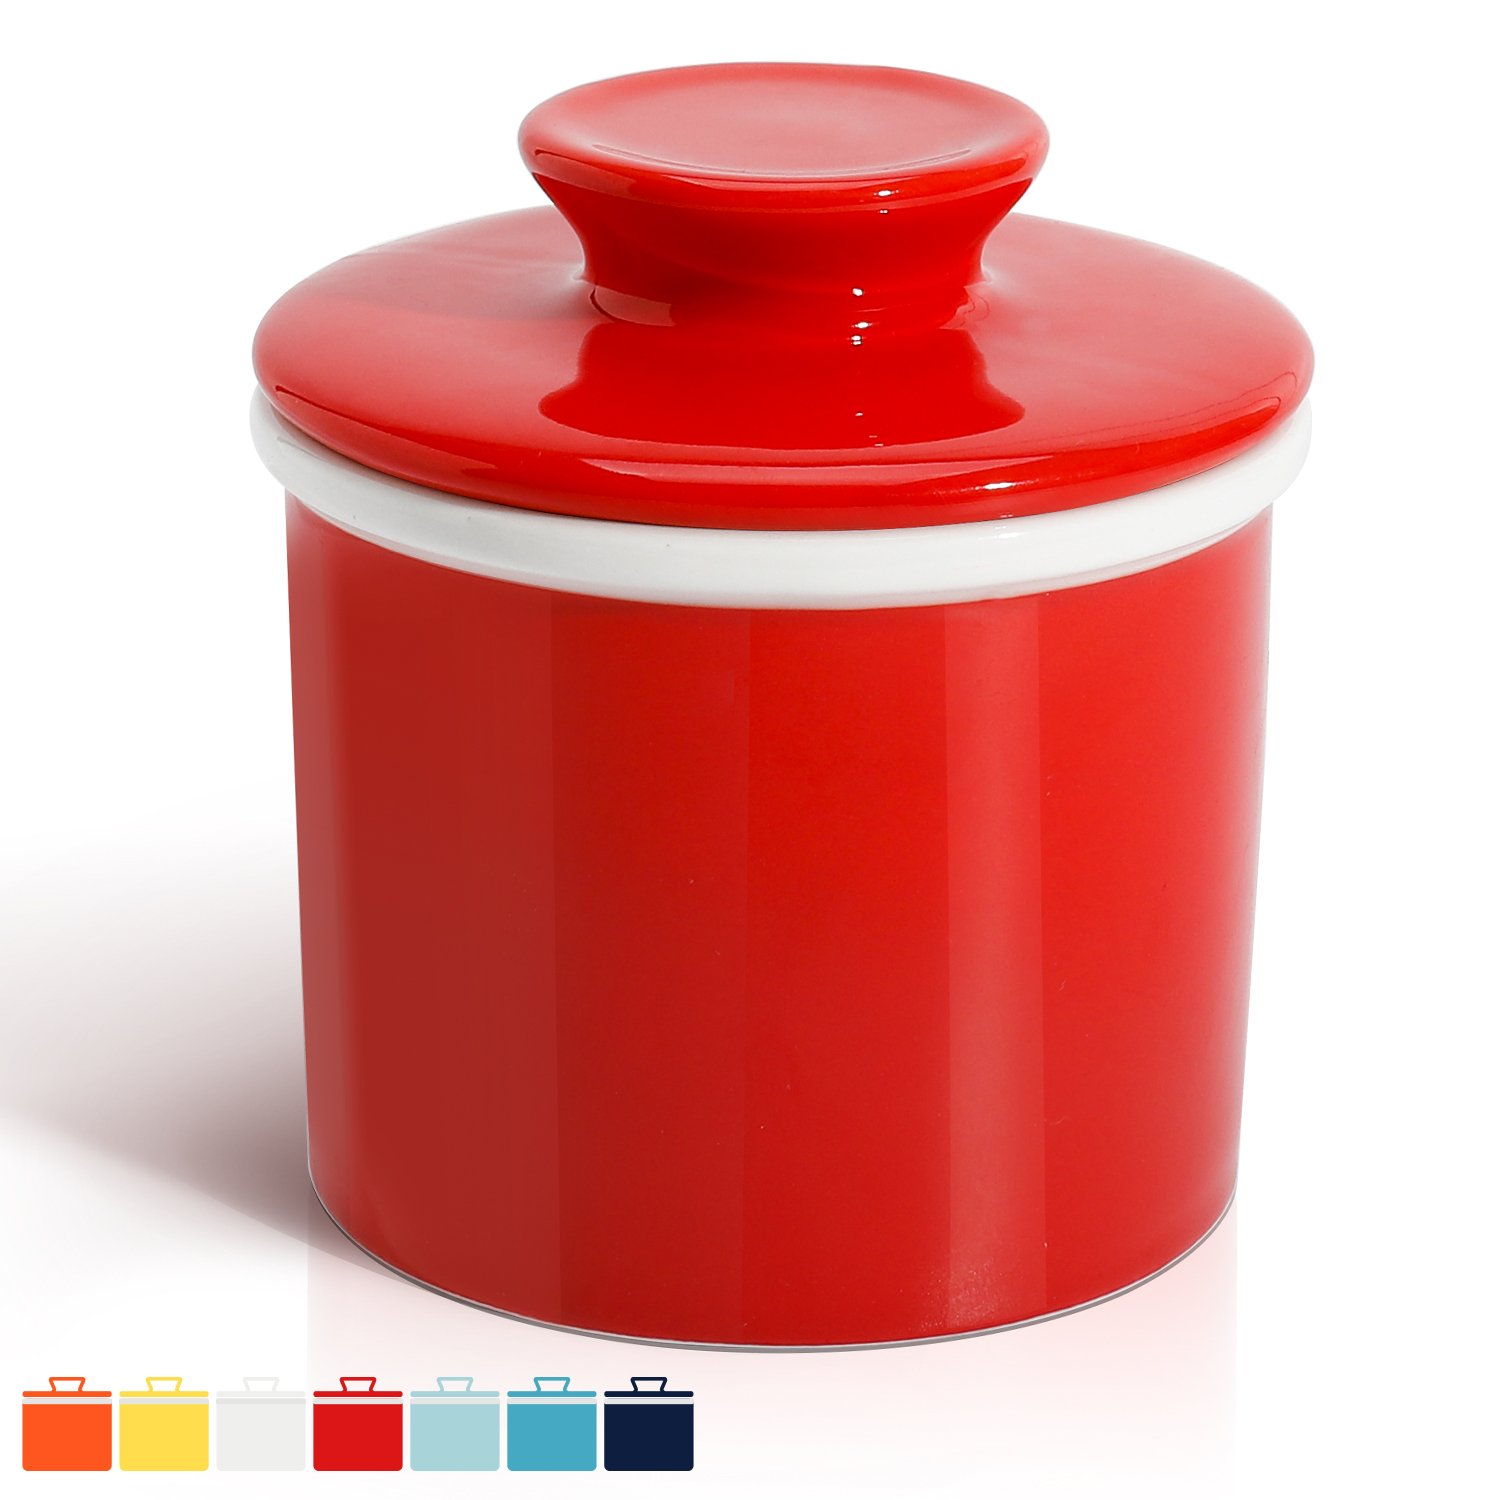 Sweese 3114 Porcelain Butter Keeper Crock - French Butter Dish - No More Hard Butter - Perfect Spreadable Consistency, Red